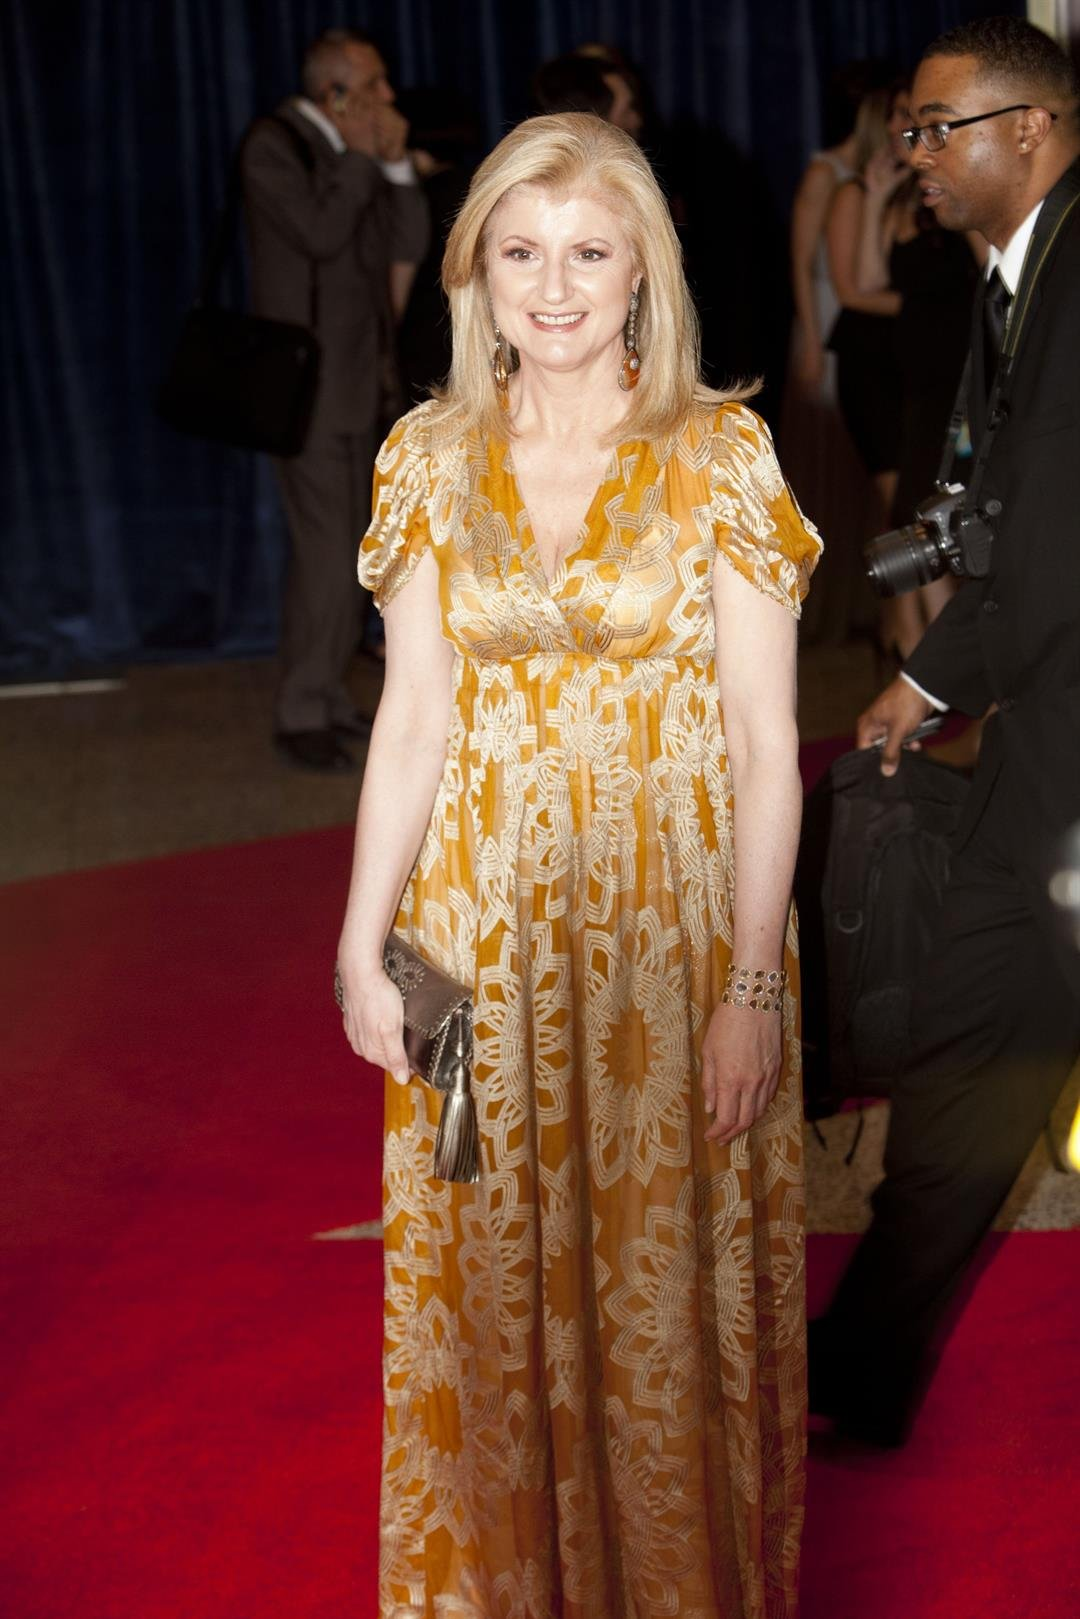 Arianna Huffington arrives at the 2011 White House Correspondents' Dinner in Washington D.C. (File photo)